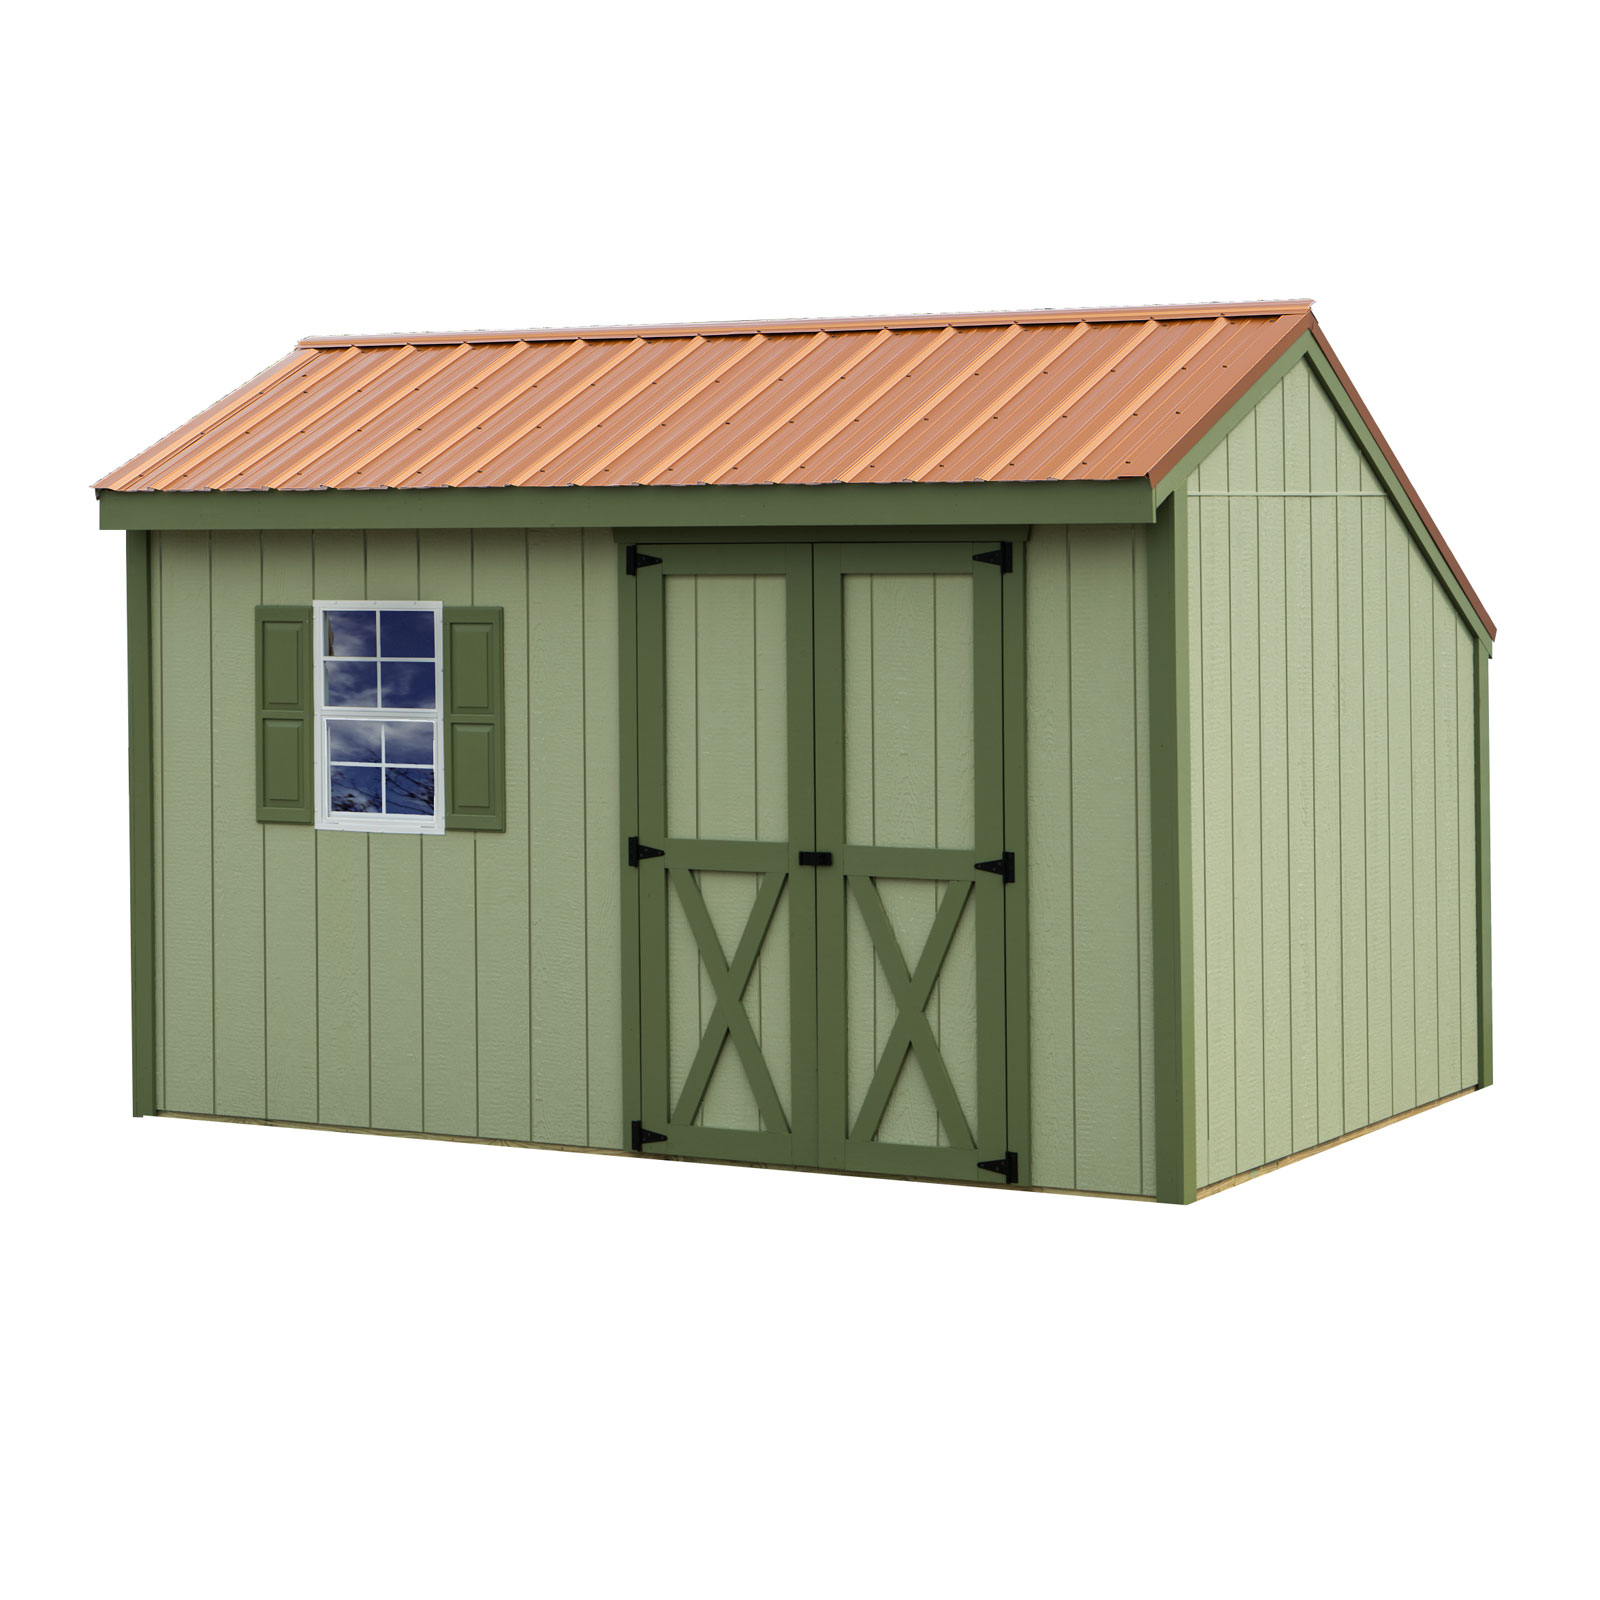 Best barns aspen 8ftx10ft wooden shed barn kit for 12x8 shed with side door